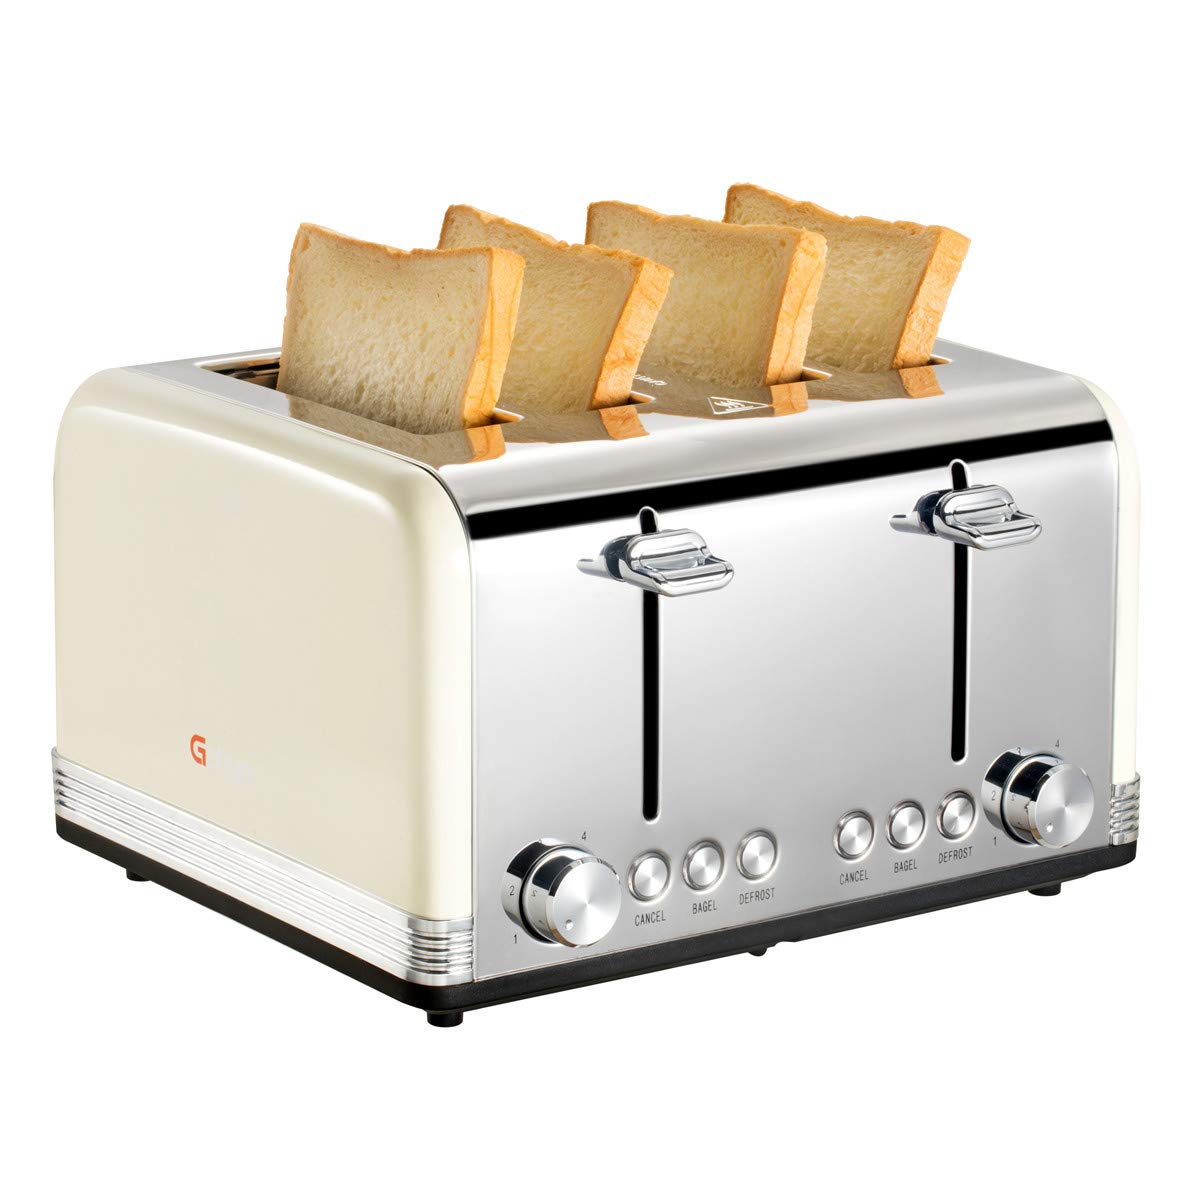 Gohyo 4 Slice Toaster   Stainless Steel with Wide Slots & Removable Crumb Tray for Bread & Bagels (4 Slice, Beige)